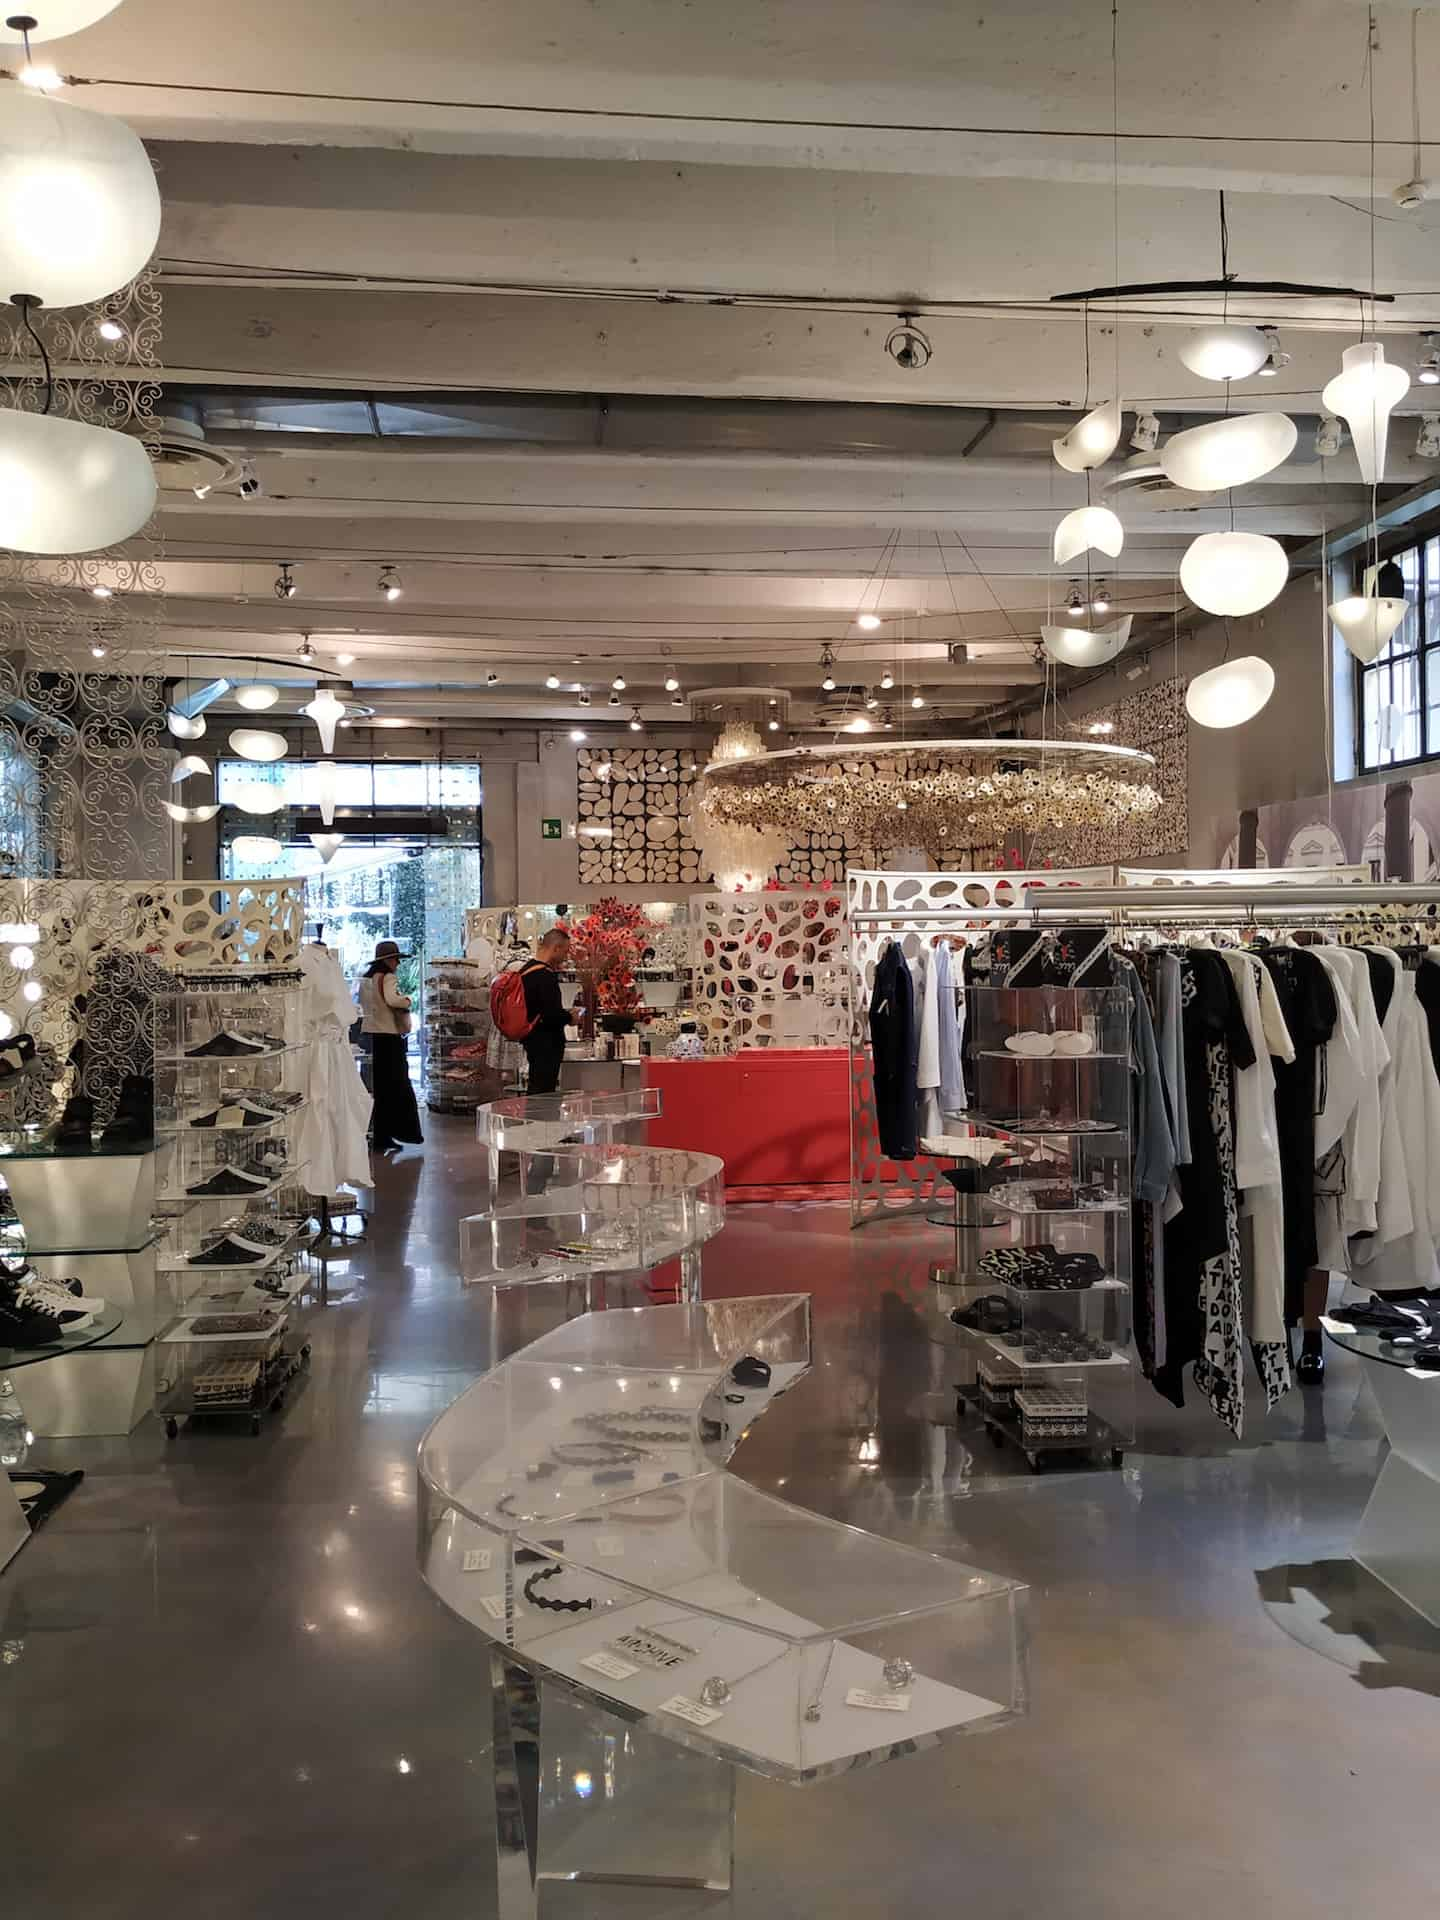 10 Corso Como, designed by Kris Rush in Milan